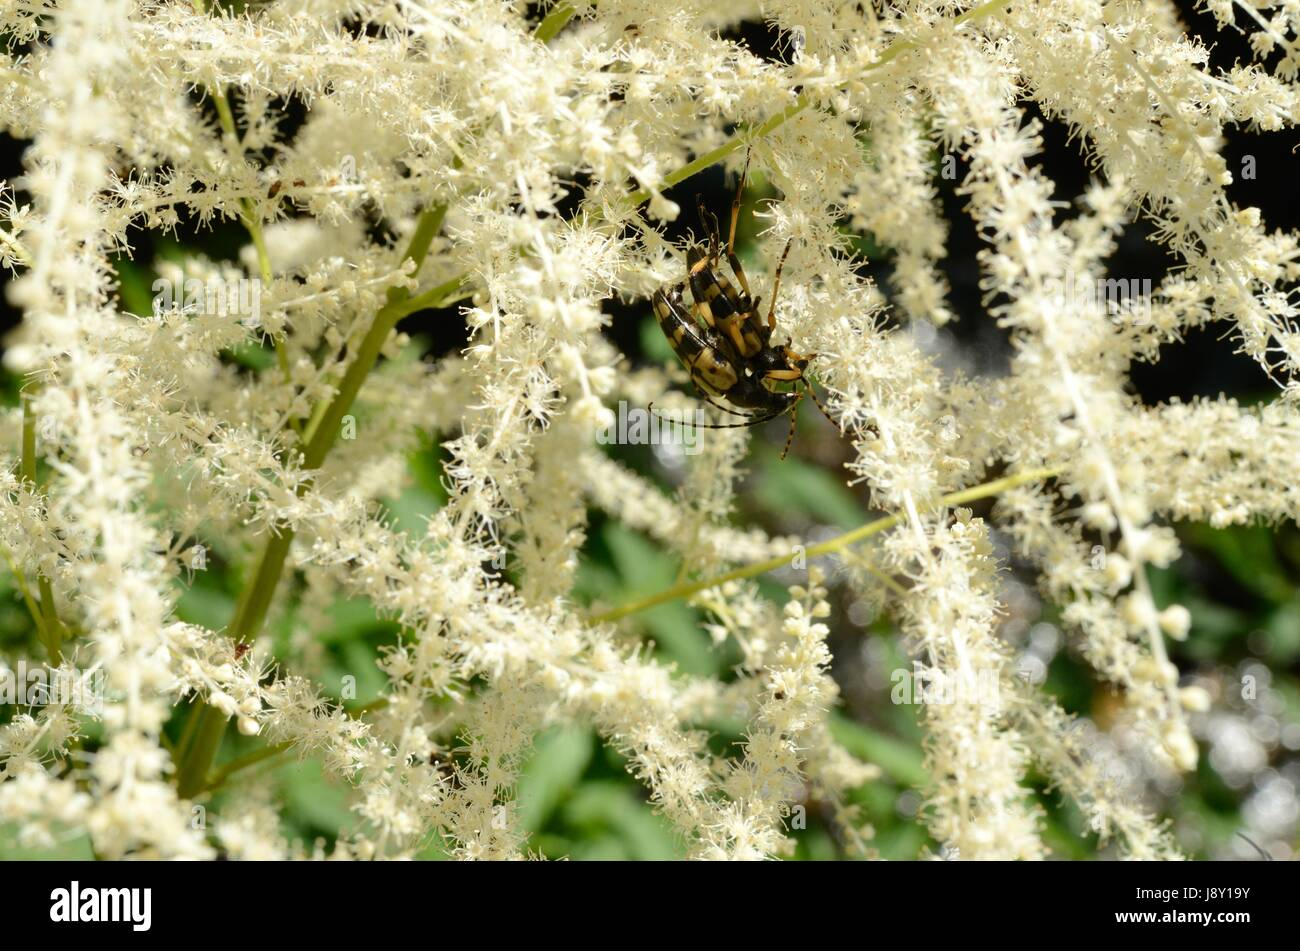 Aruncus dioicus, or Bride's Feathers, flowering in a European montane forest. The plant is also called Goat's - Stock Image